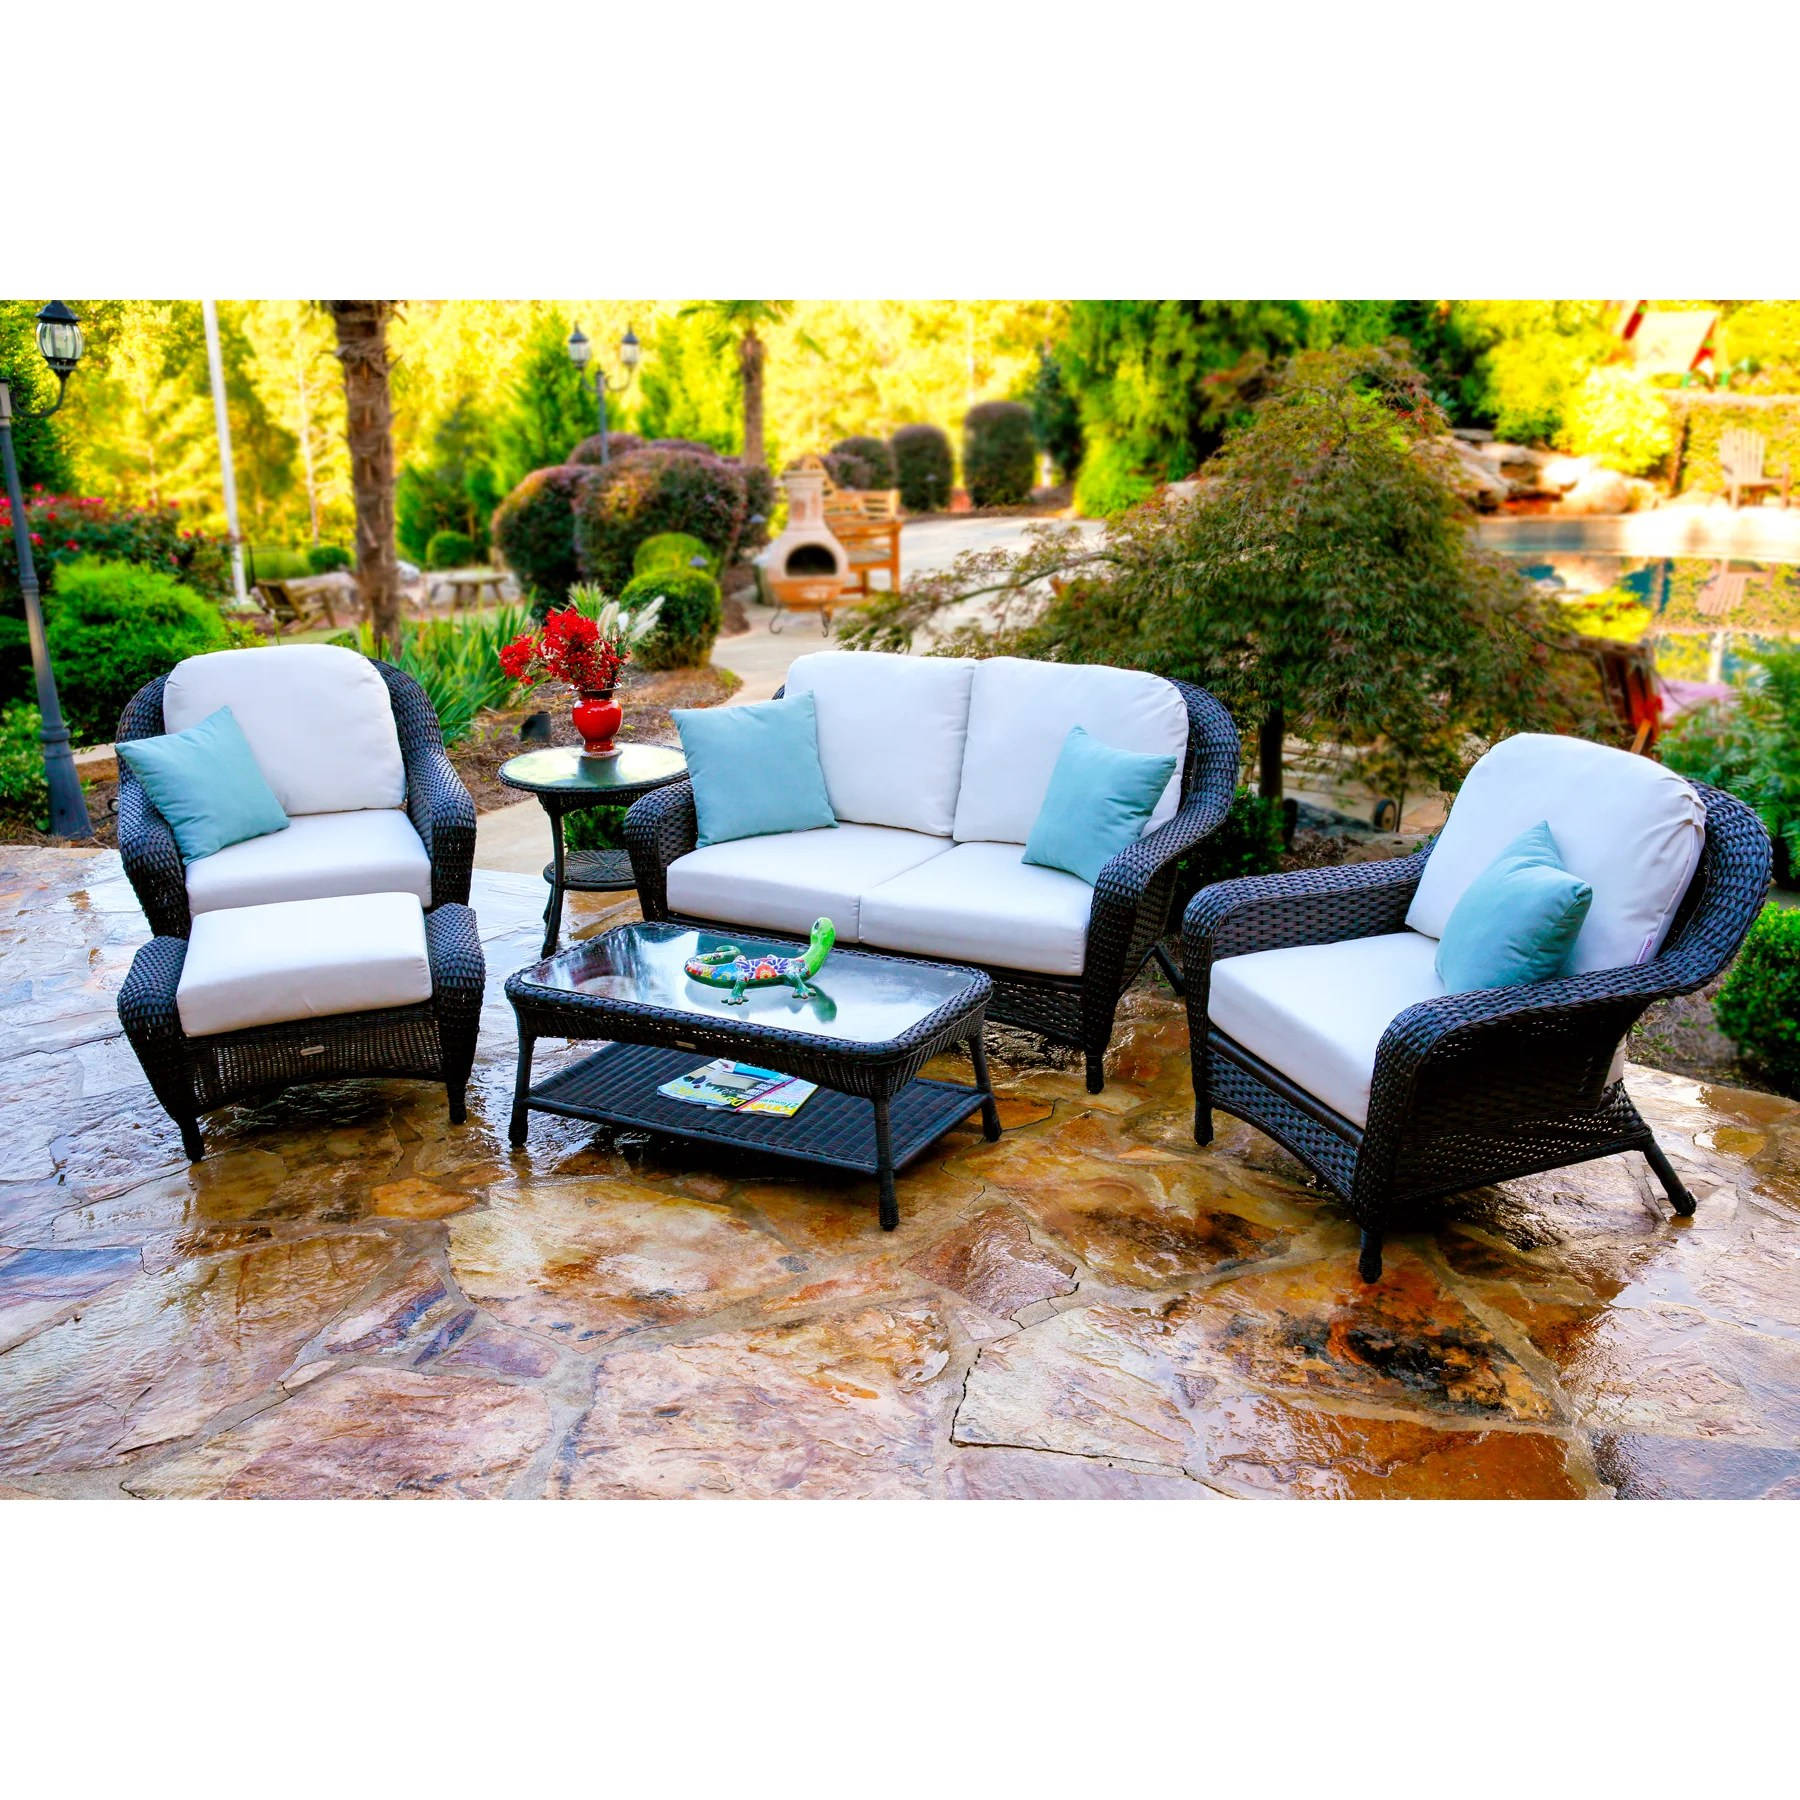 Wicker Patio Chair Lexington Dark Wicker Outdoor 6 Piece Patio Furniture Set With Cushions